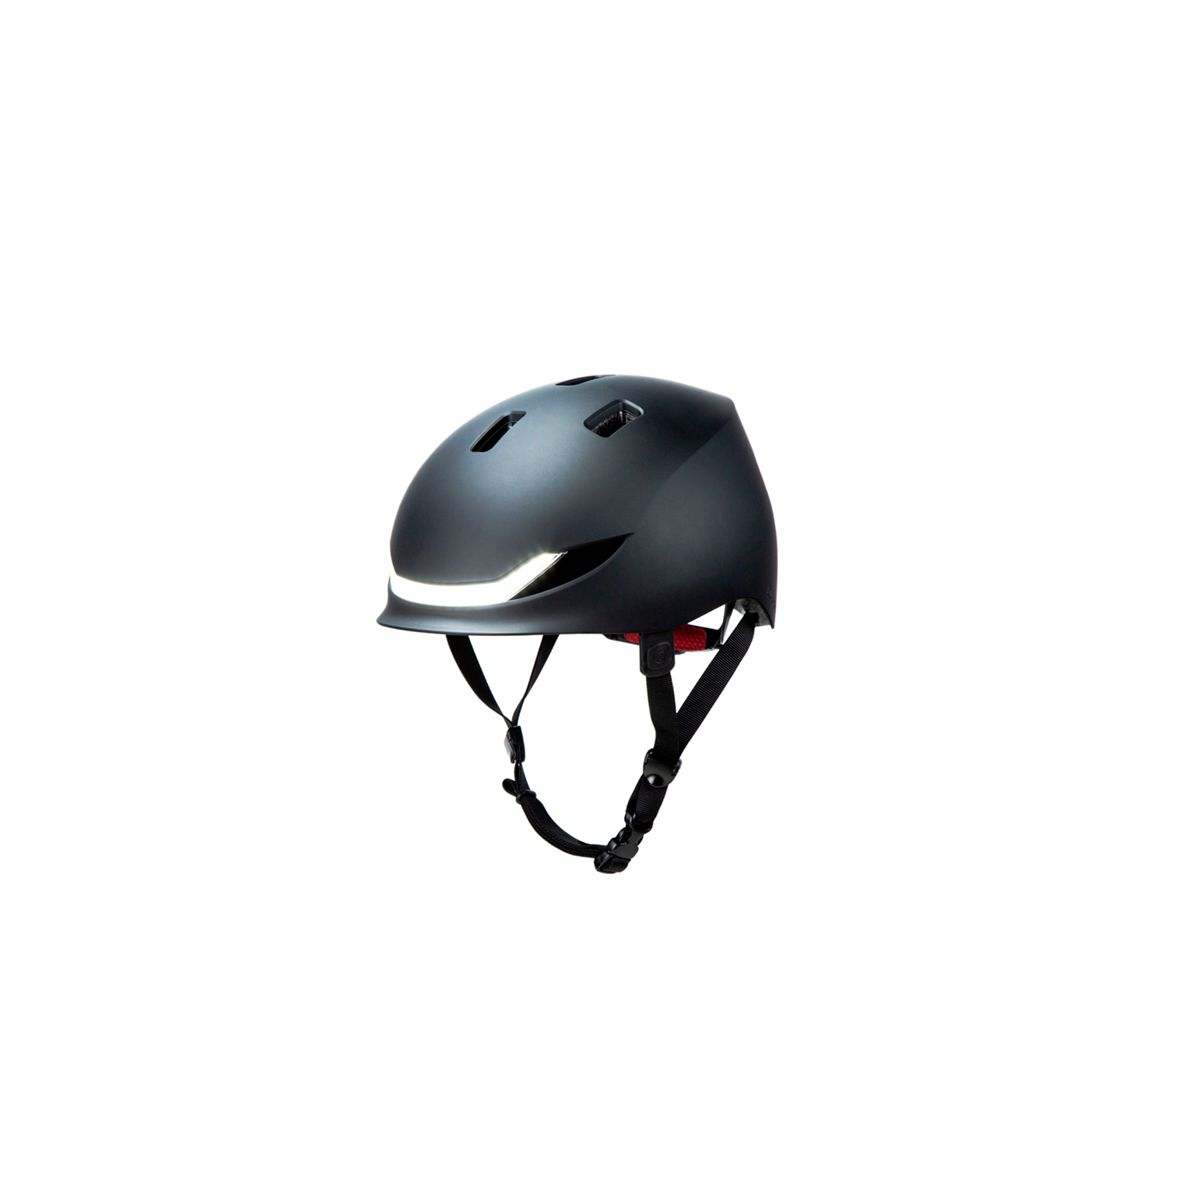 MATRIX Bike Helmet